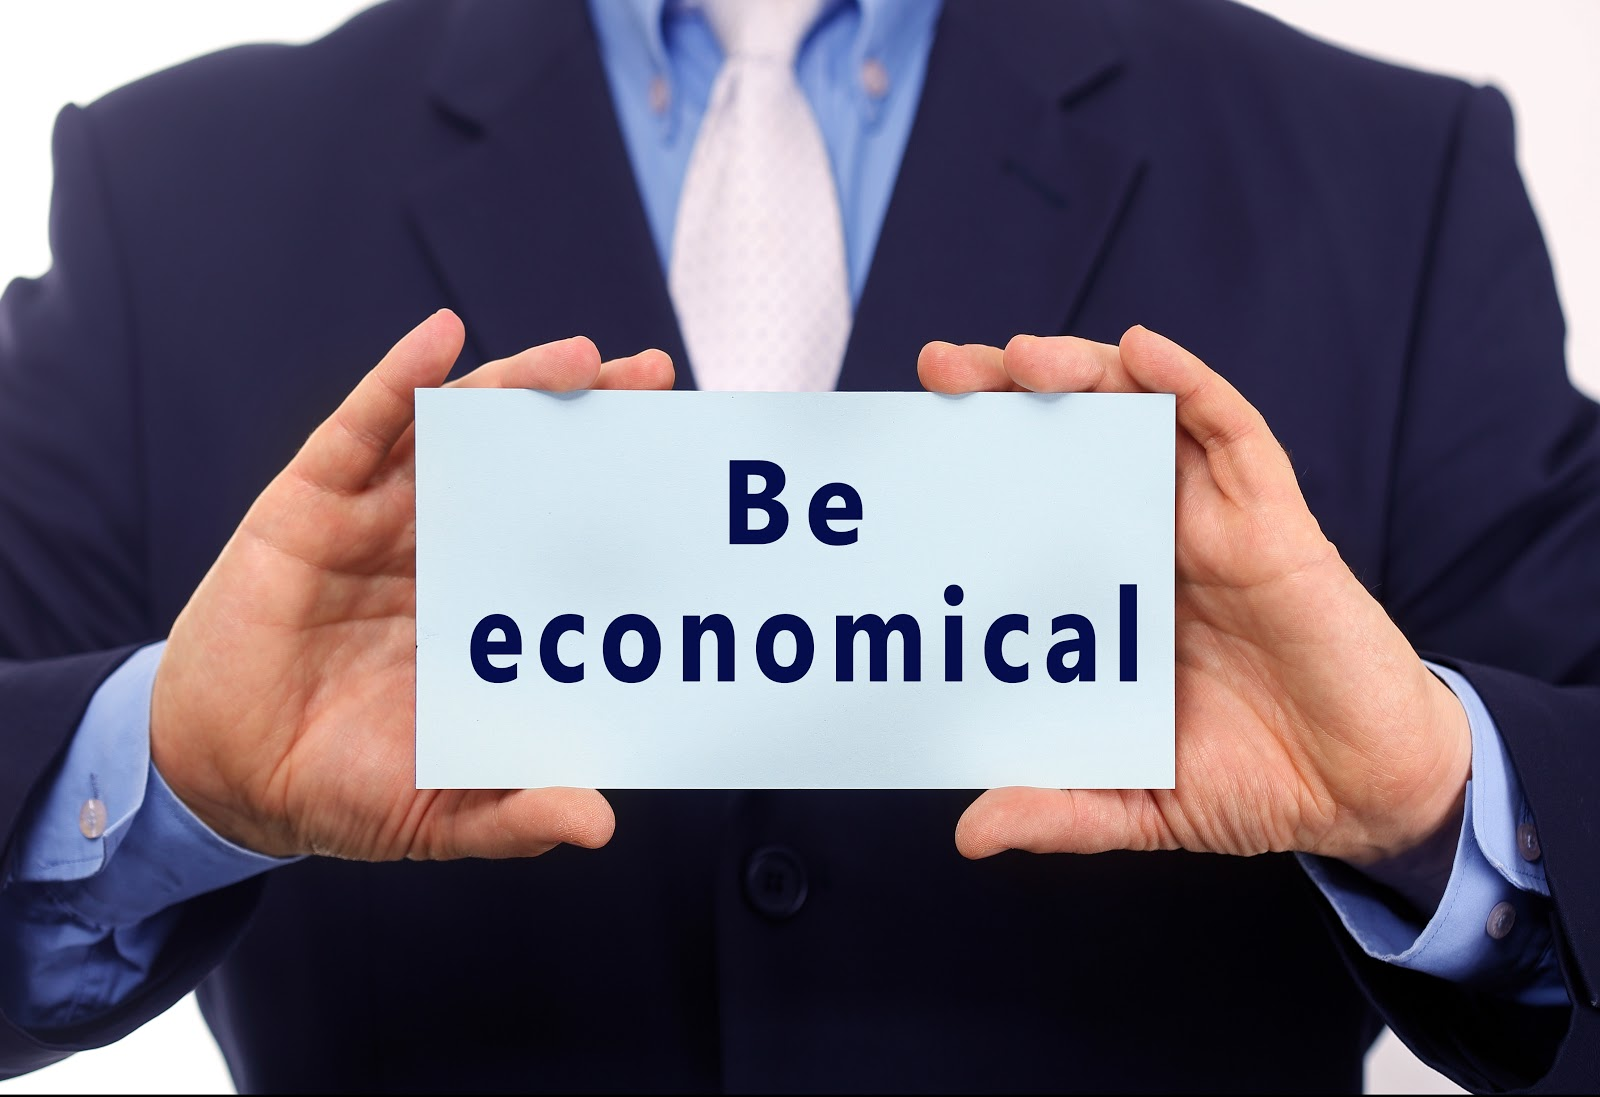 Be economical sign